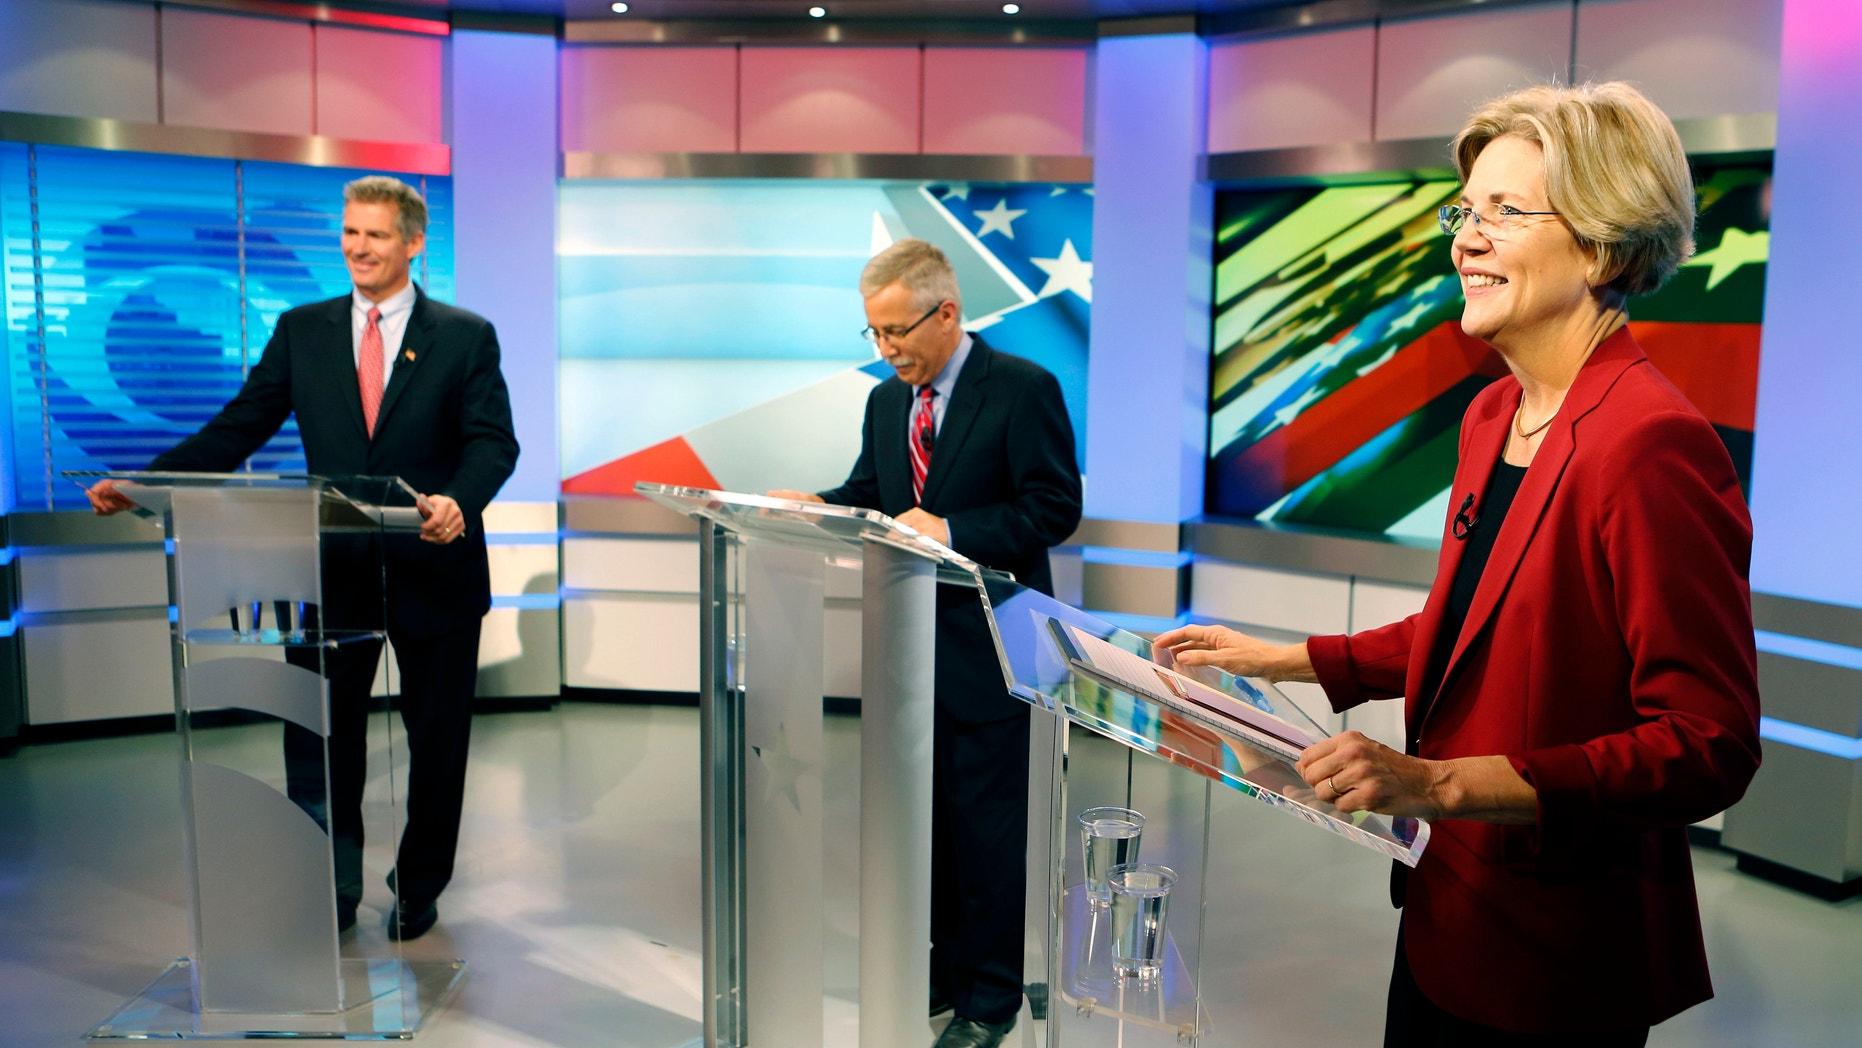 FILE: Sept. 20, 2012: Sen. Scott Brown, R-Mass., left, and Democratic challenger Elizabeth Warren before their first debate along with moderator Jon Keller, center.